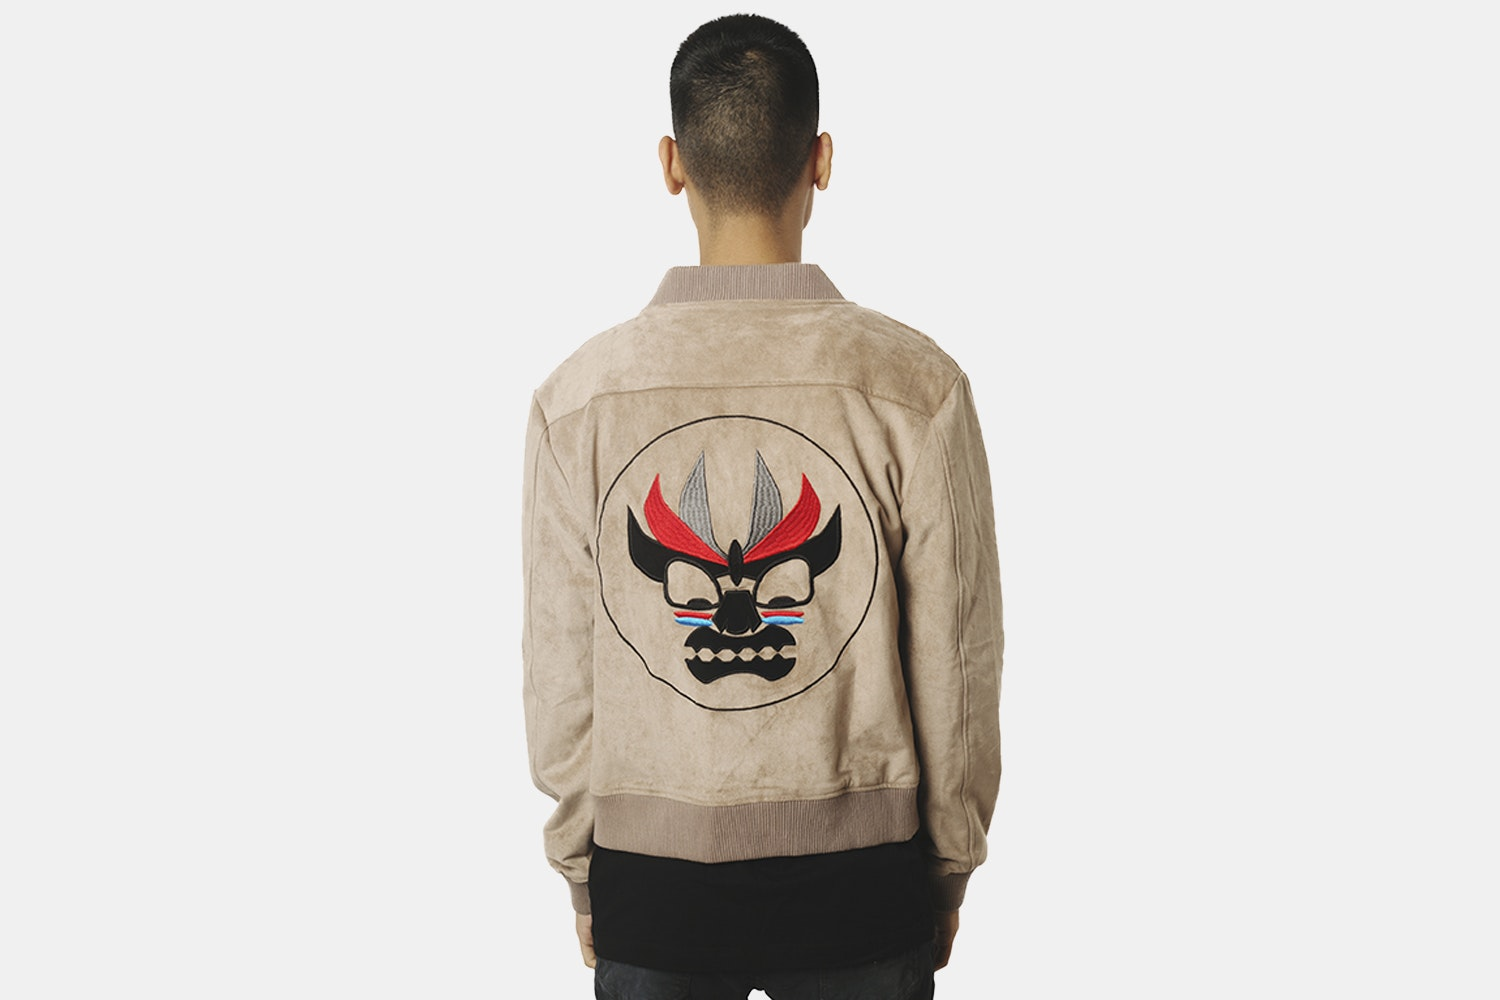 Aku Bomber Jacket (with back embroidery) - Camel  (+ $20)